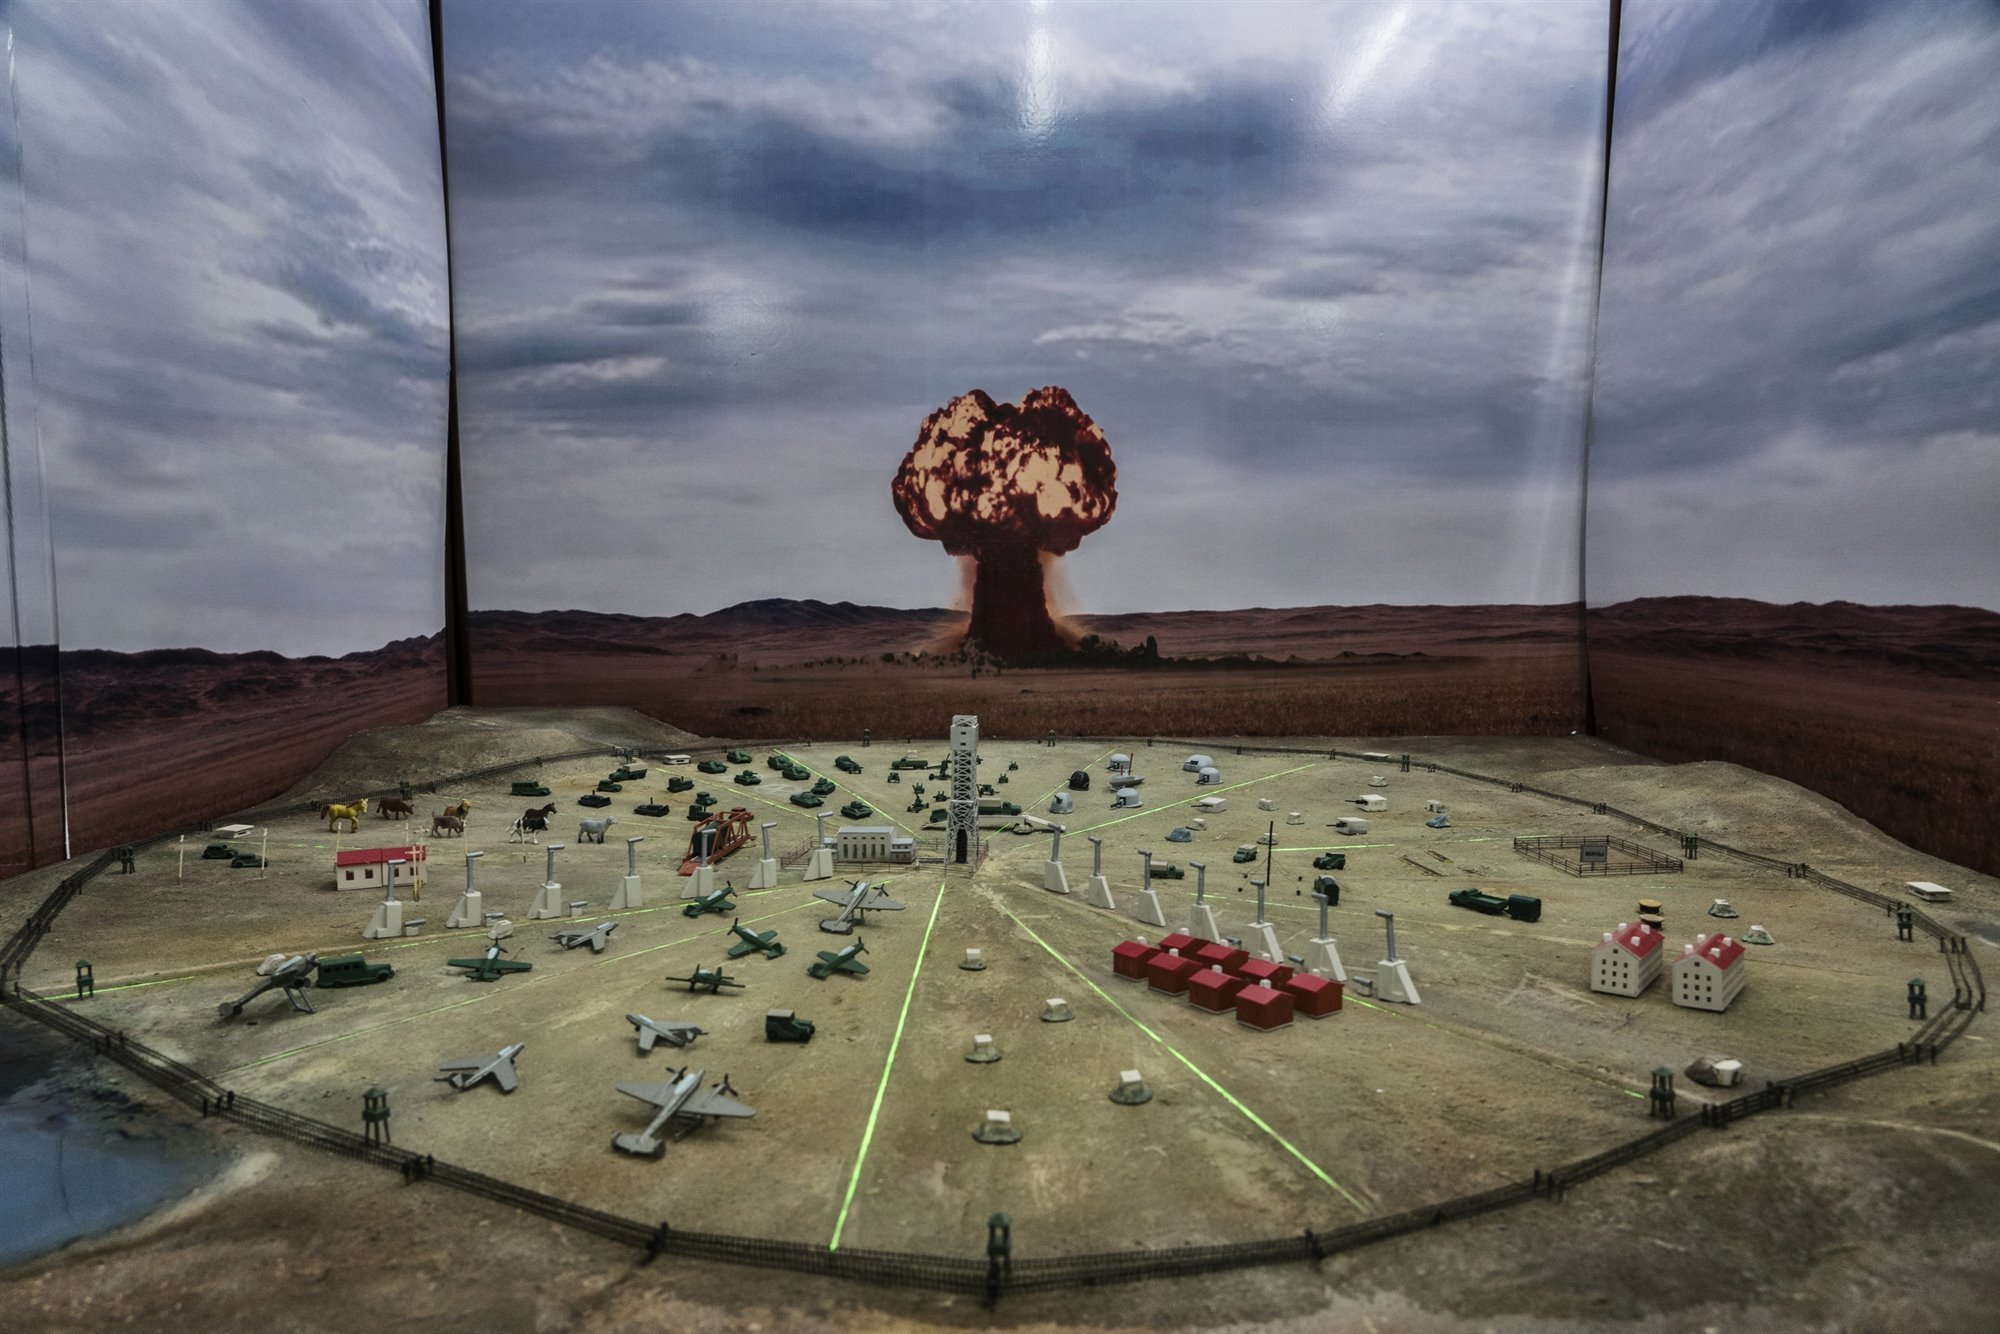 A model reproducing the site of the Semipalatinsk nuclear tests